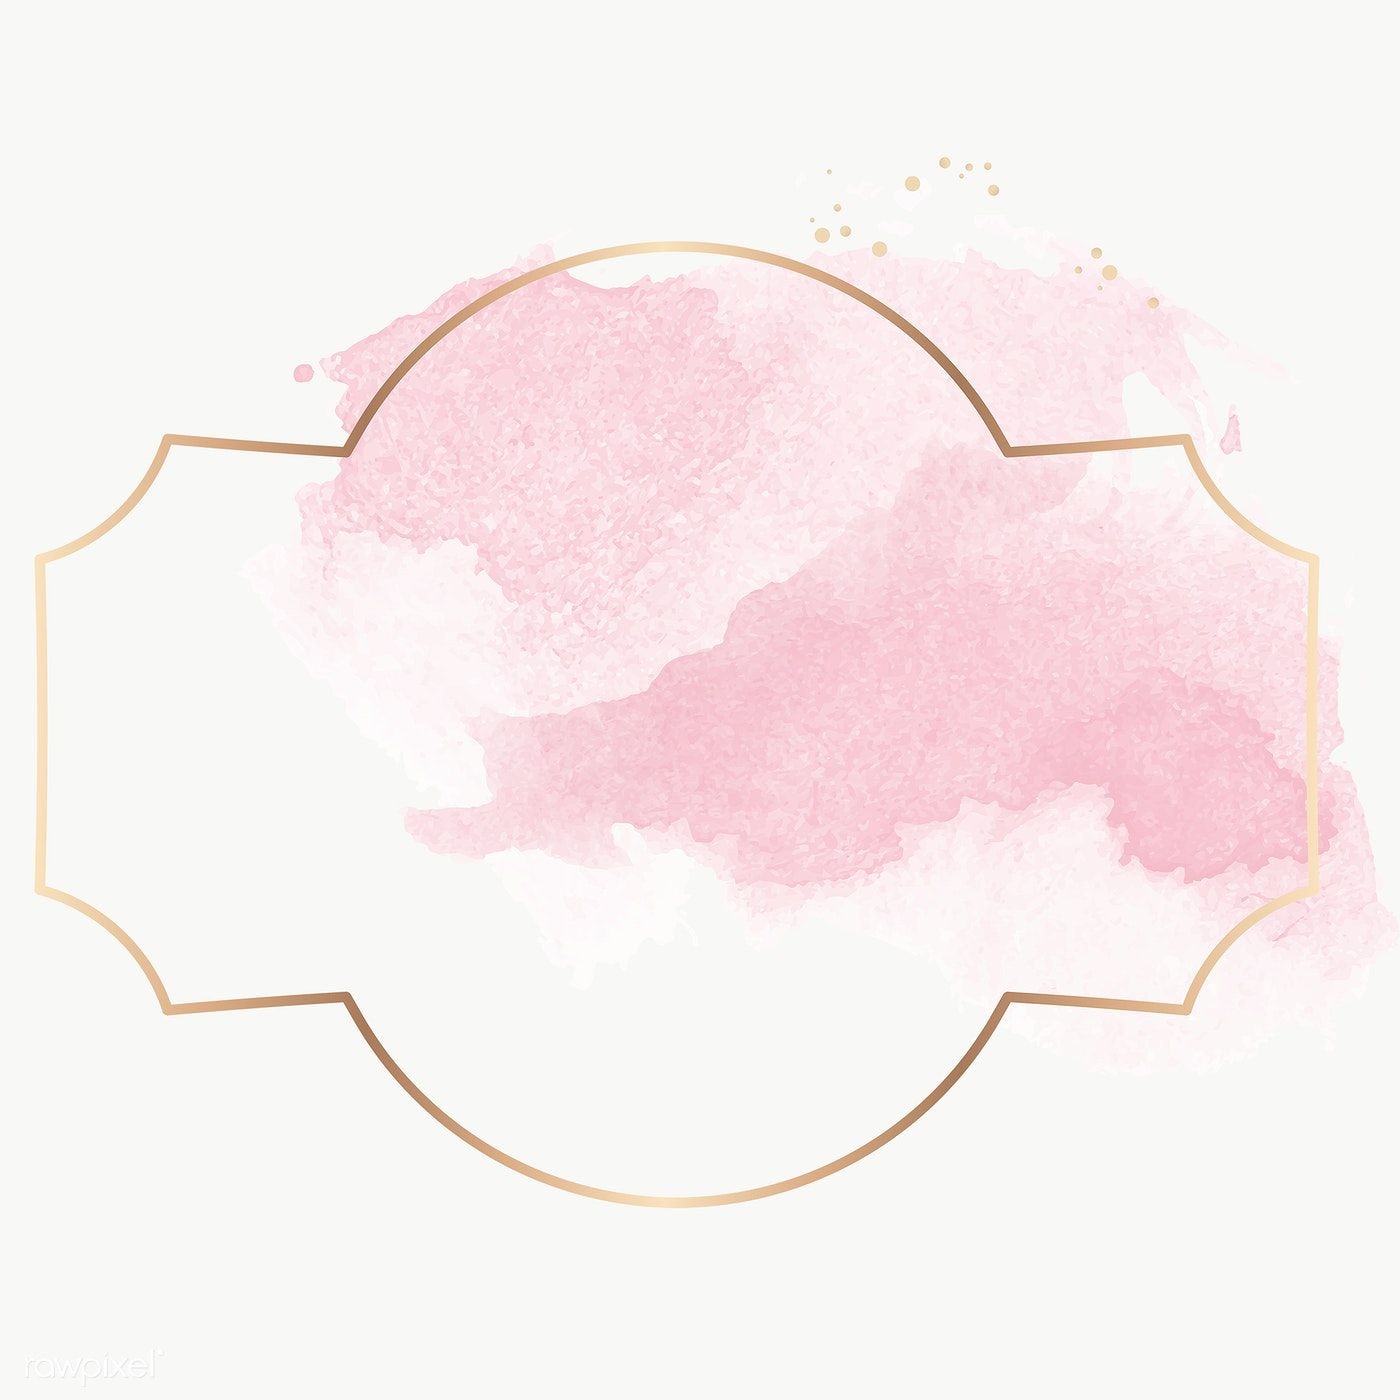 Gold Badge With Pink Watercolor Paint Transparent Png Premium Image By Rawpixel Com Nunny Pink Watercolor Watercolor Paint Set Free Printable Art